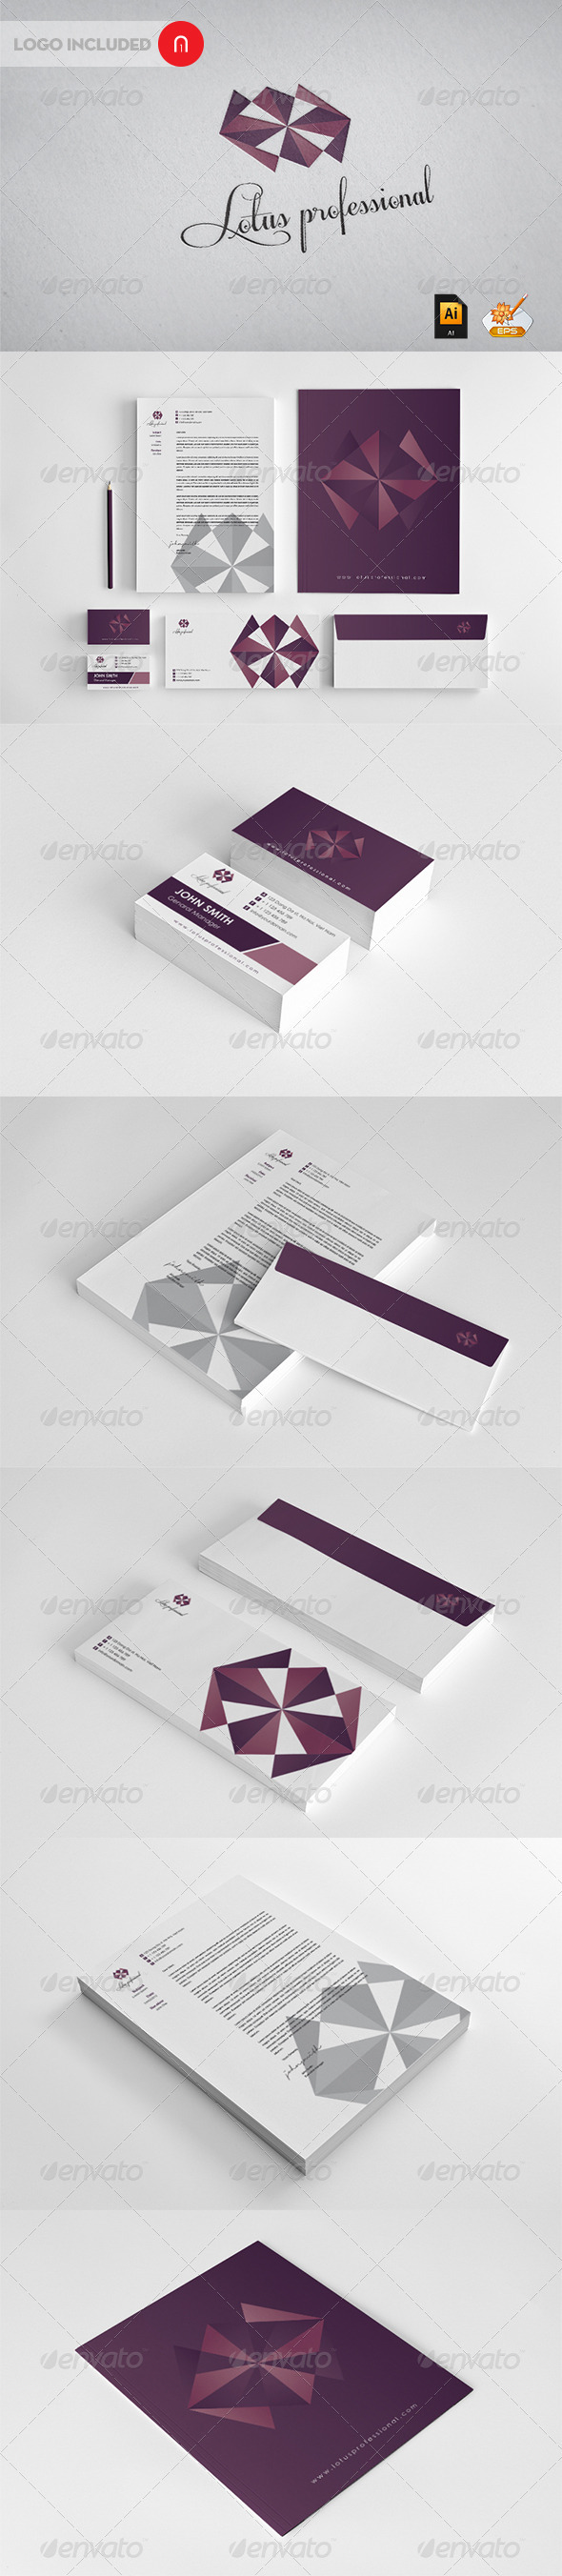 Lotus professional Corporate Identity - Stationery Print Templates